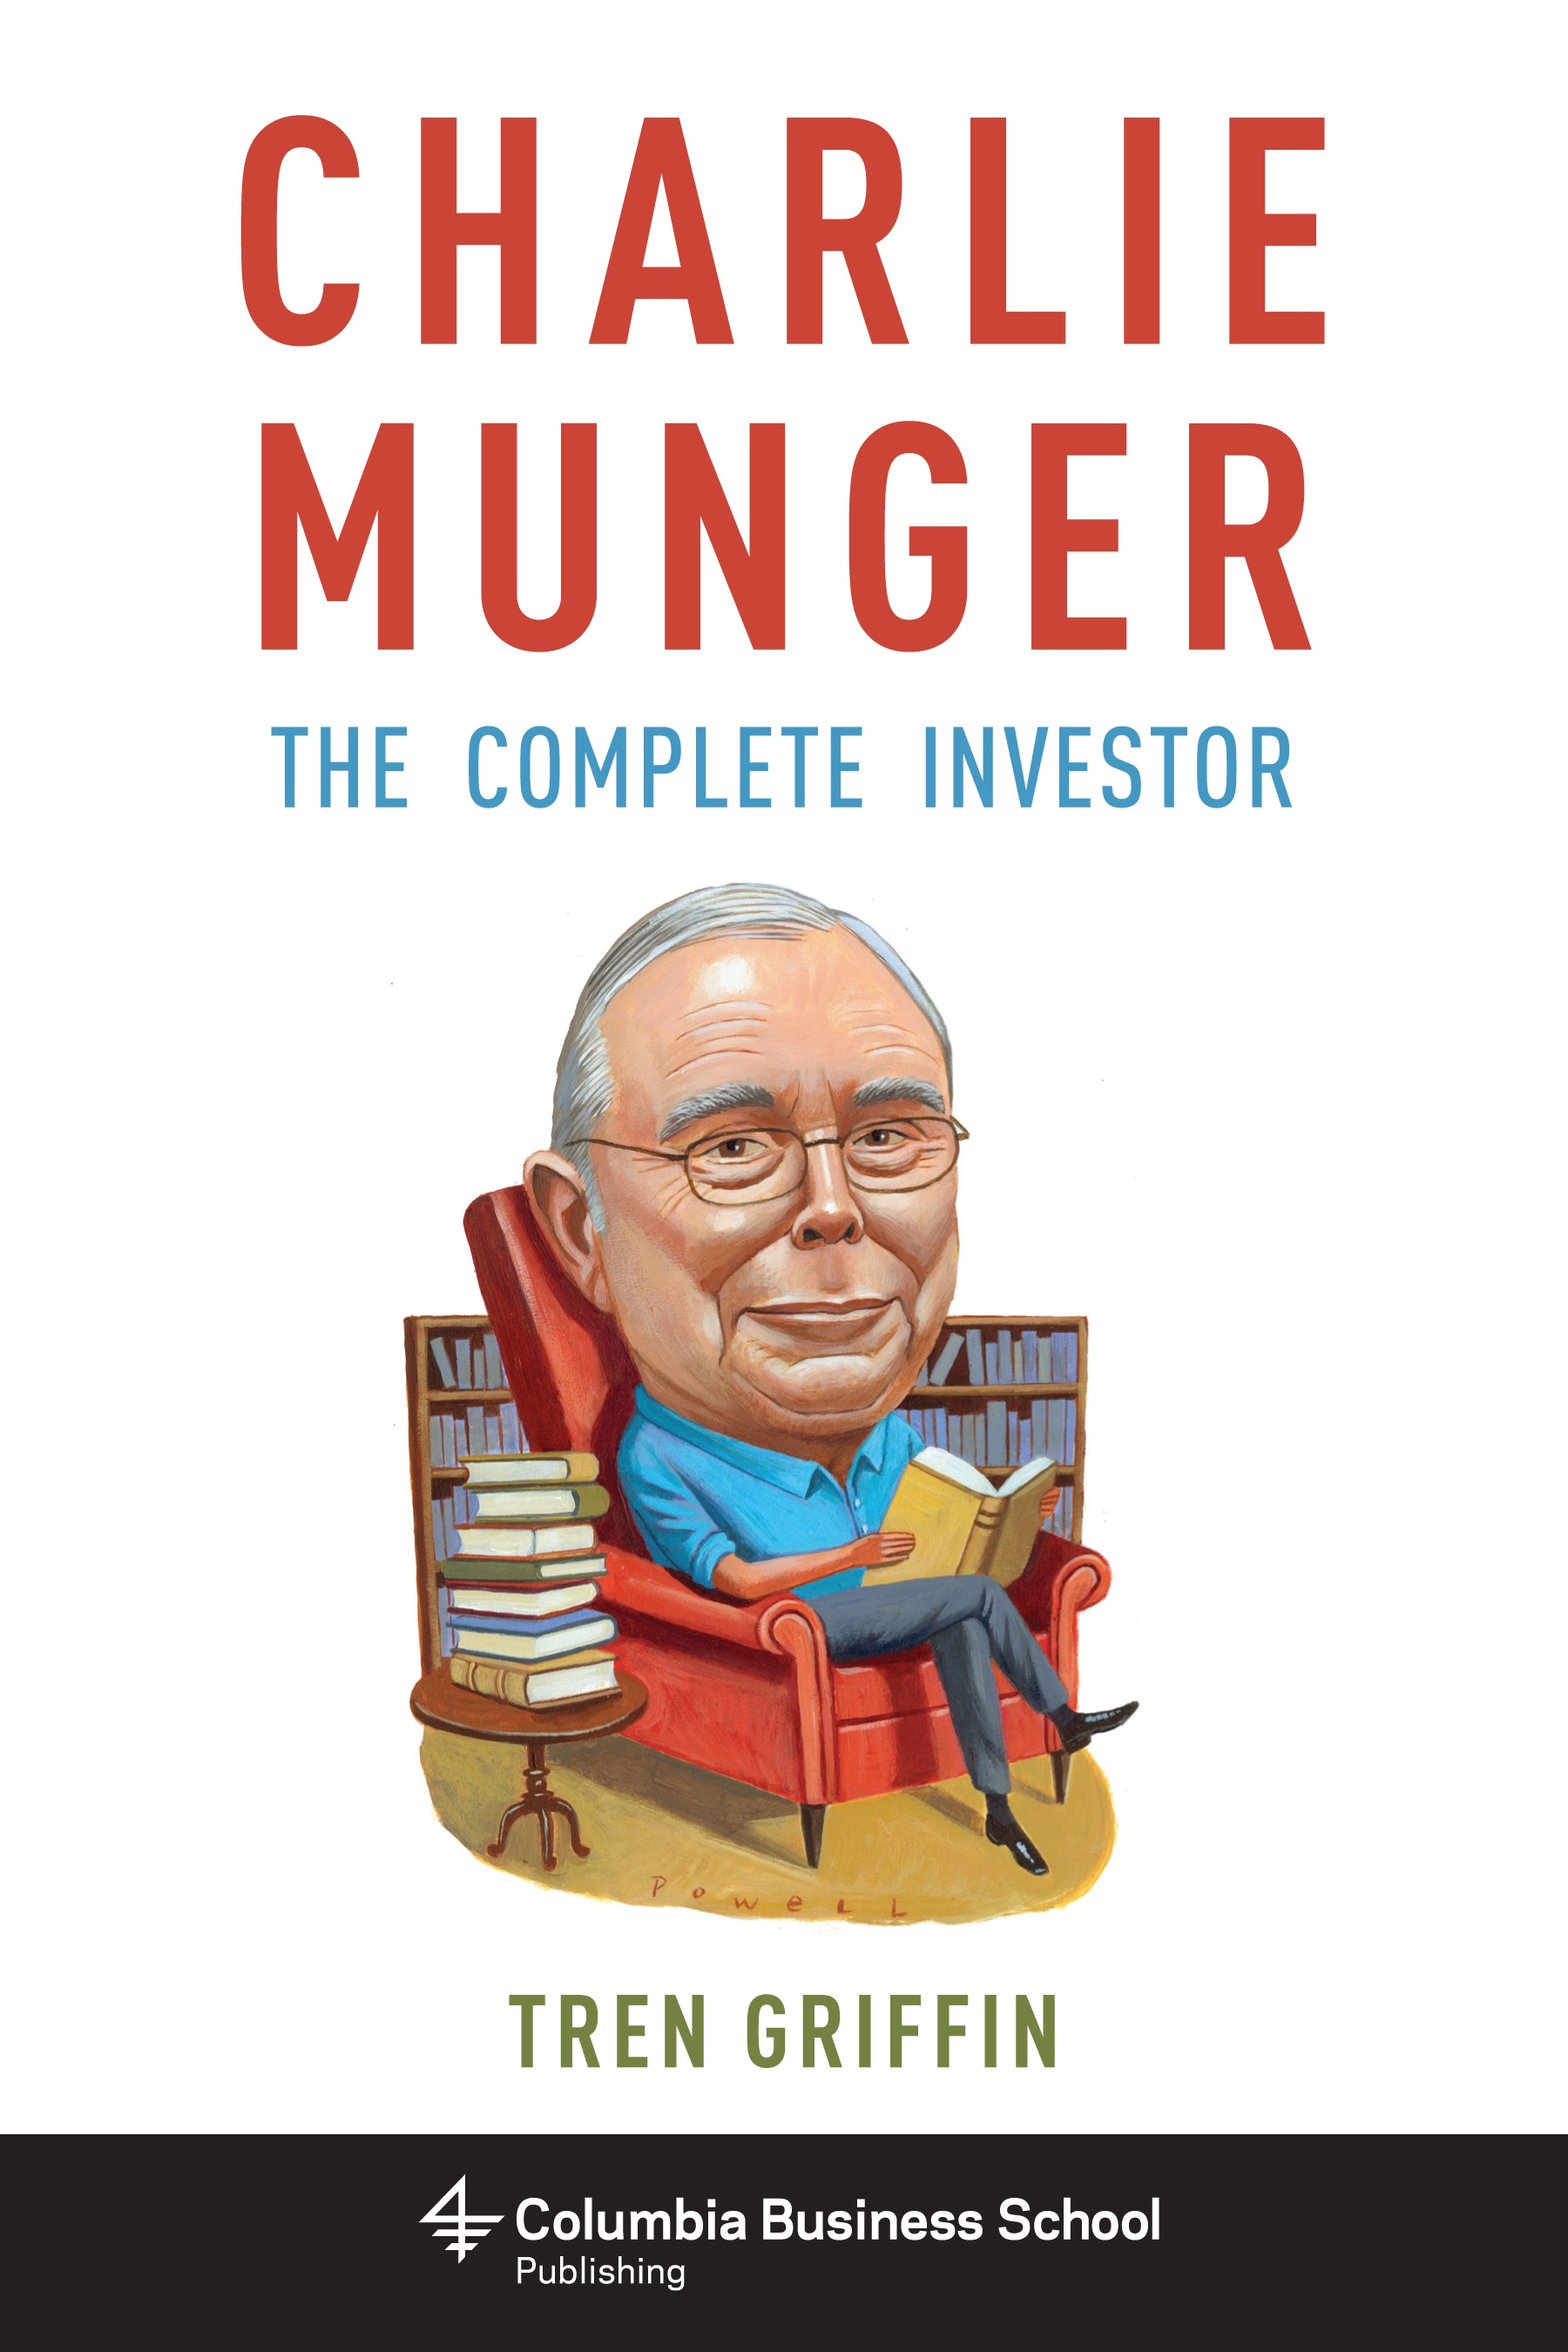 Book Cover of Charlie Munger